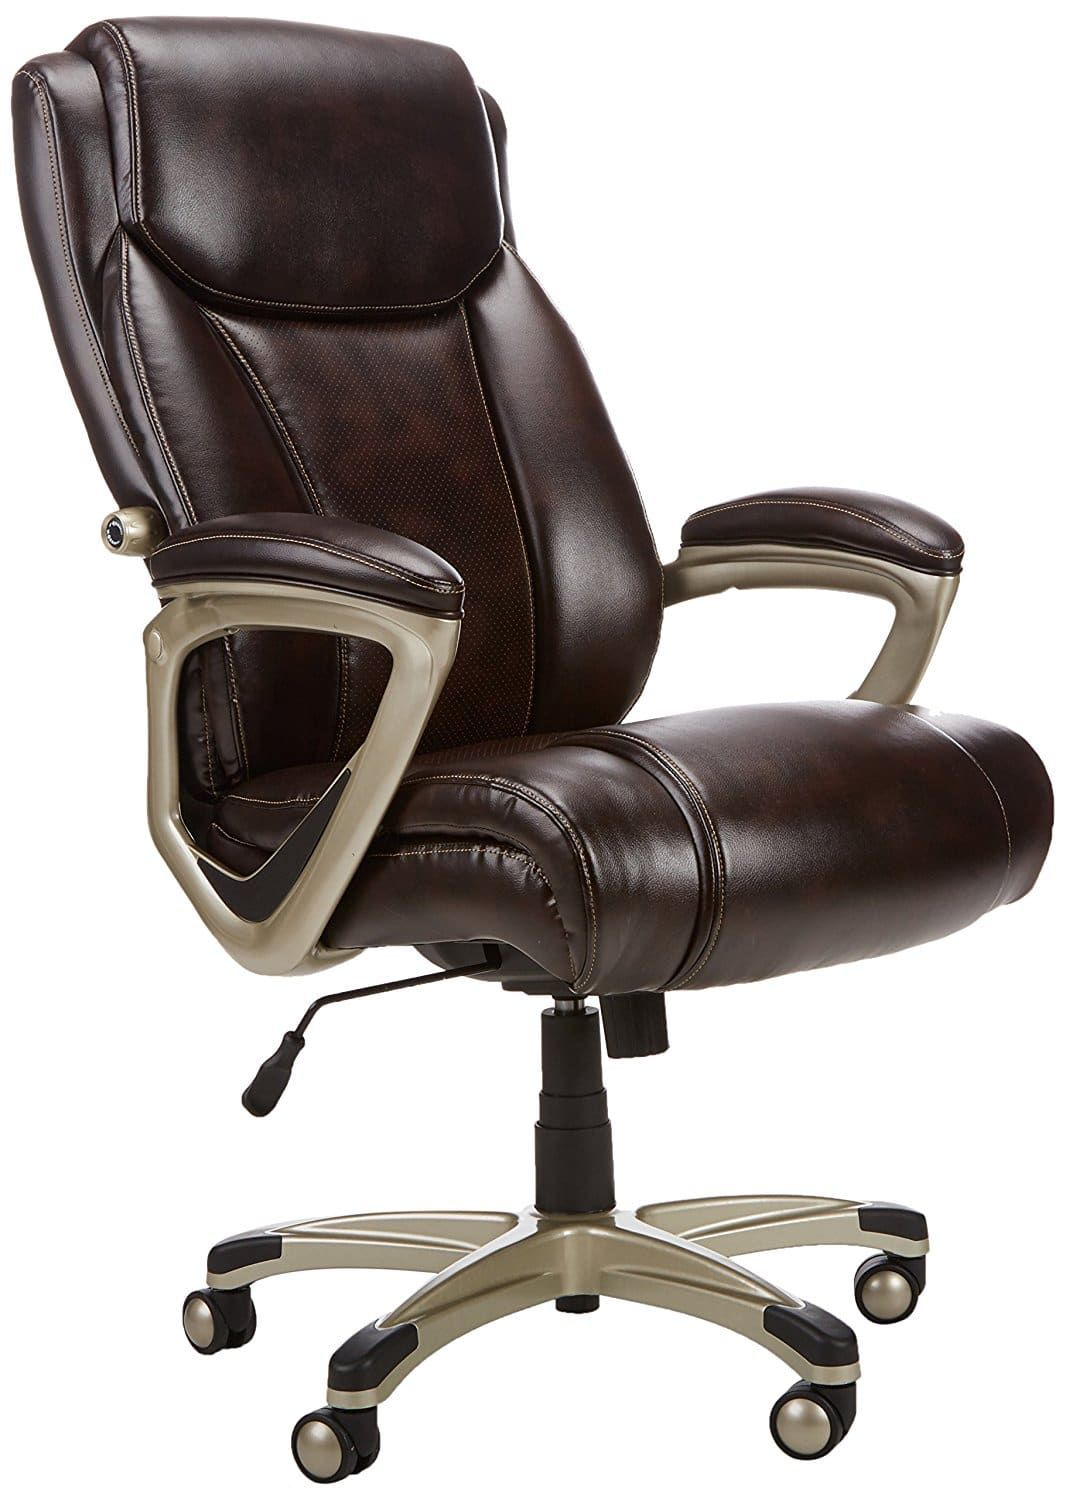 Top 10 Best Executive Chairs In 2020 Review Purchasing Guide